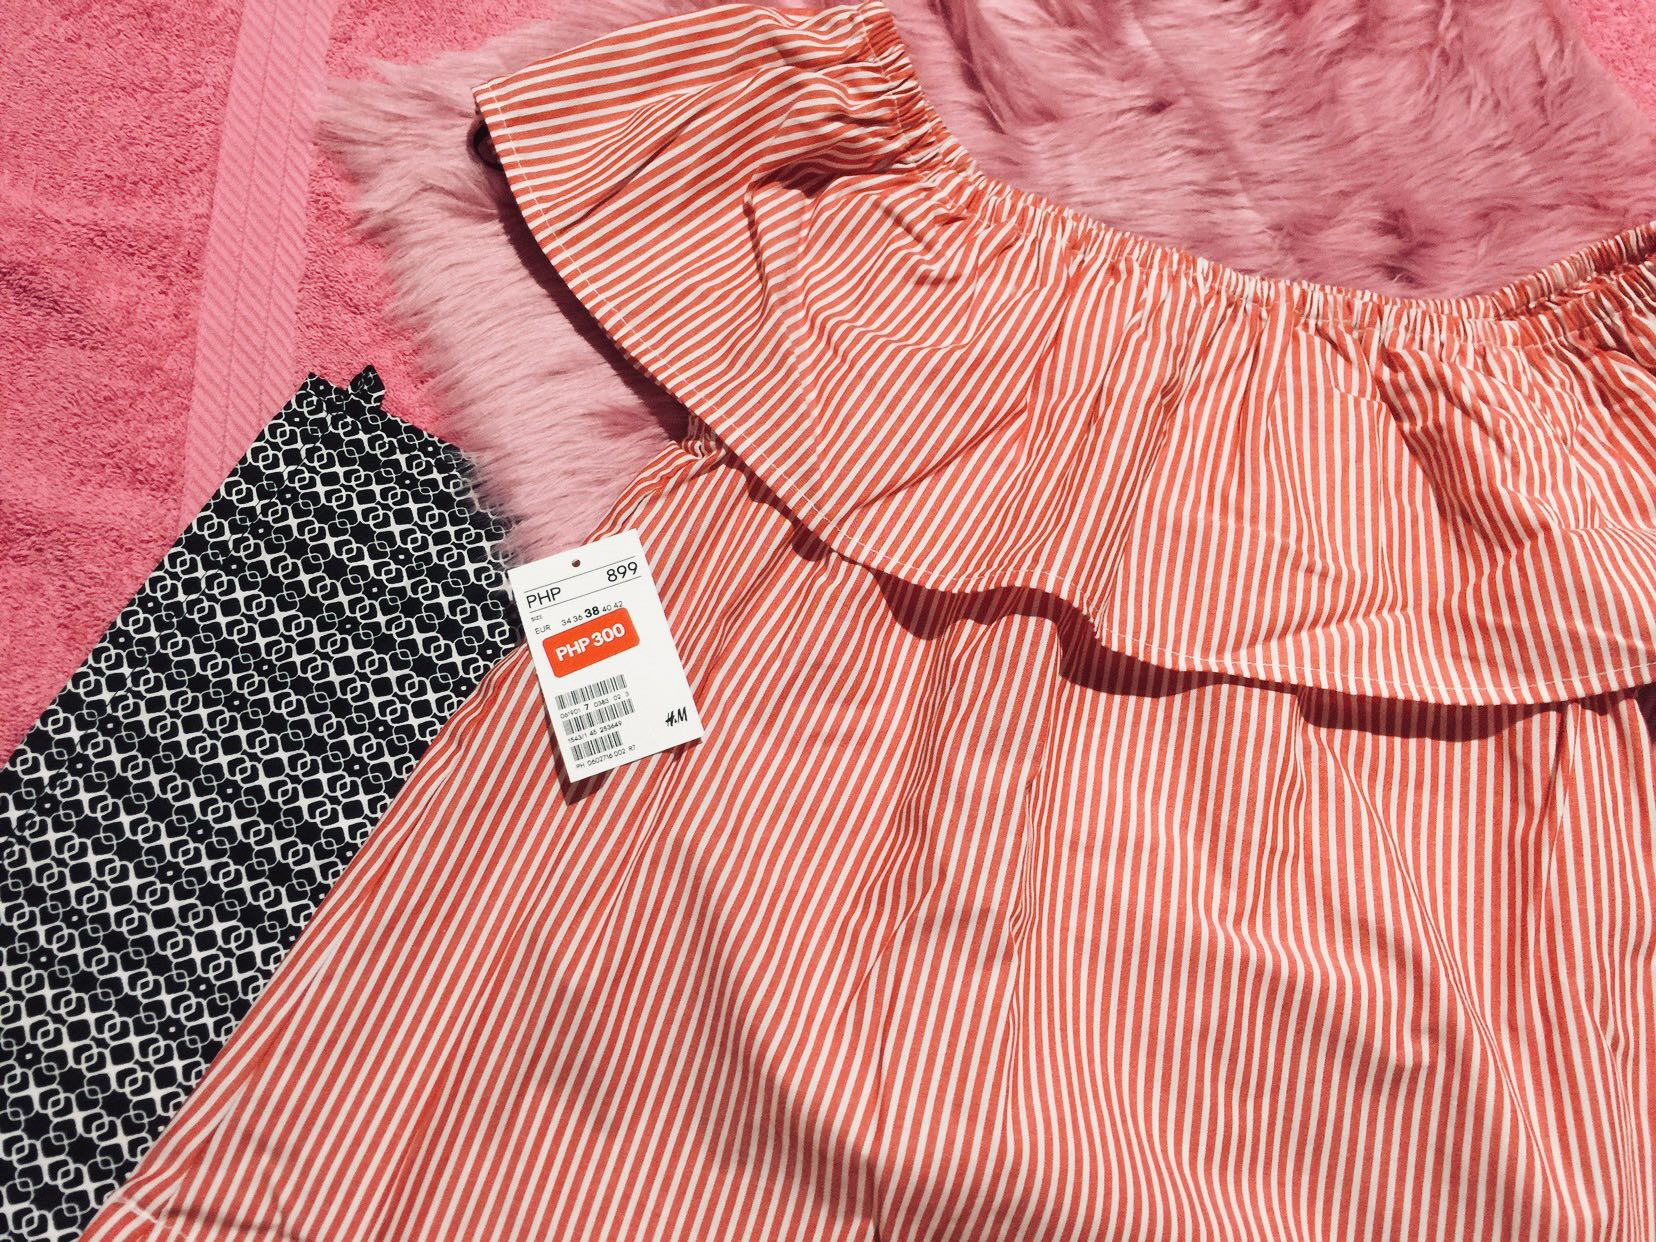 5d29281928 H&M] Red-striped Top, Women's Fashion, Clothes, Tops on Carousell